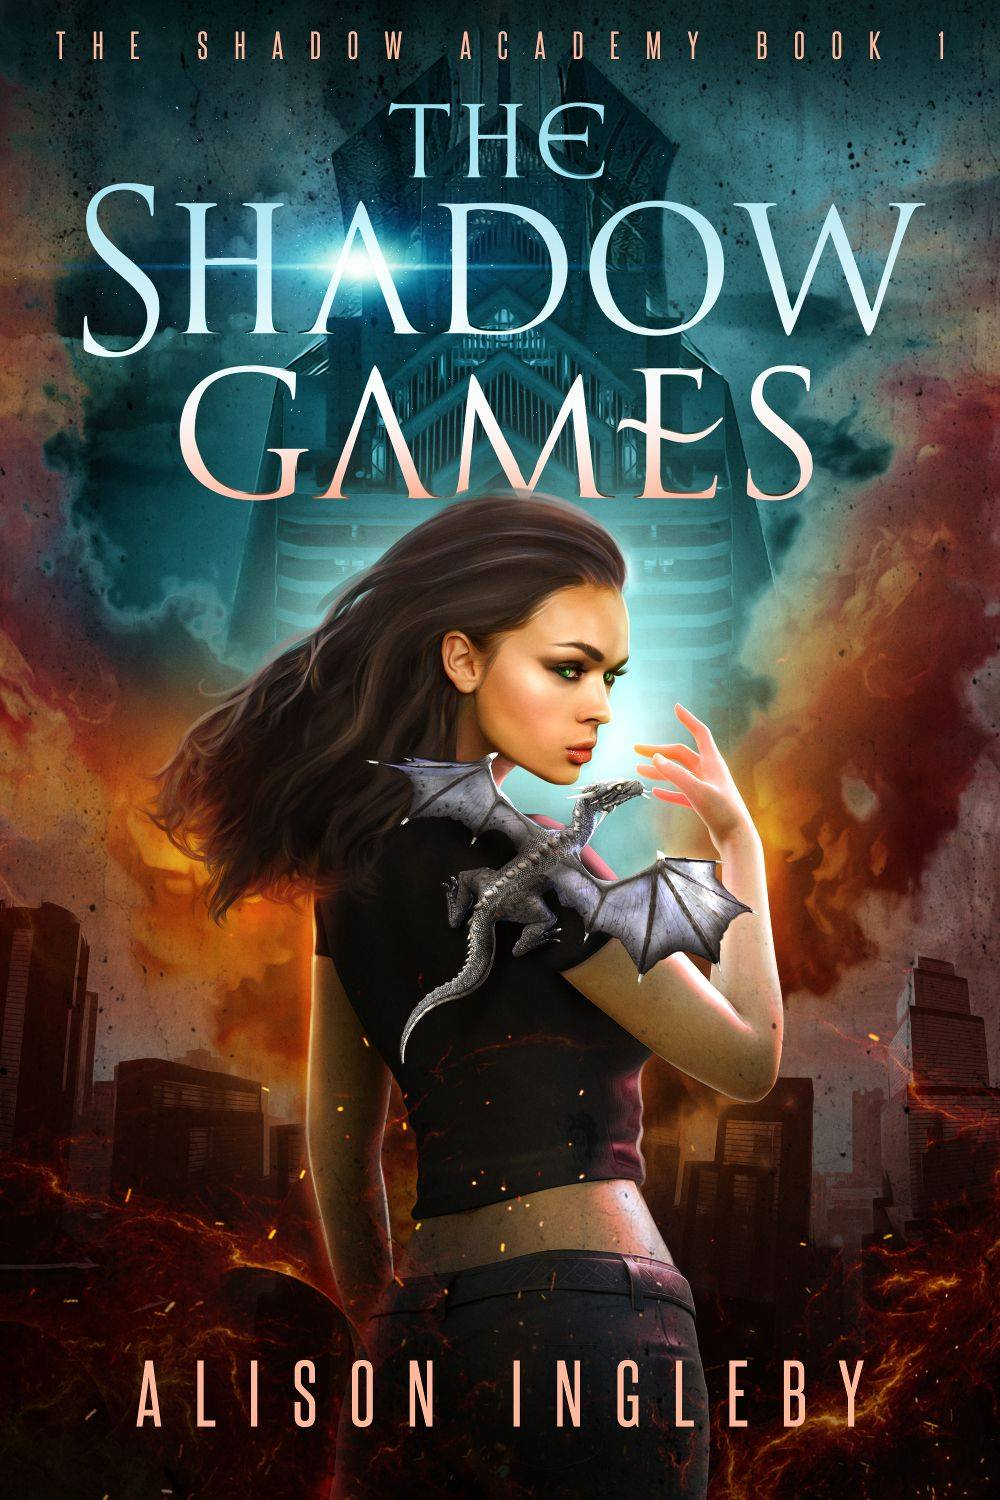 THE SHADOW GAMES   Alison Ingleby   Eighteen-year-old Vesper's dreams of attending the Royal Academy are shattered when she's branded a criminal and dumped on the city floor to die.  In the shadow city, factions war and monsters roam the streets. But Vesper's biggest fear is the power she wields—a power she can't control.